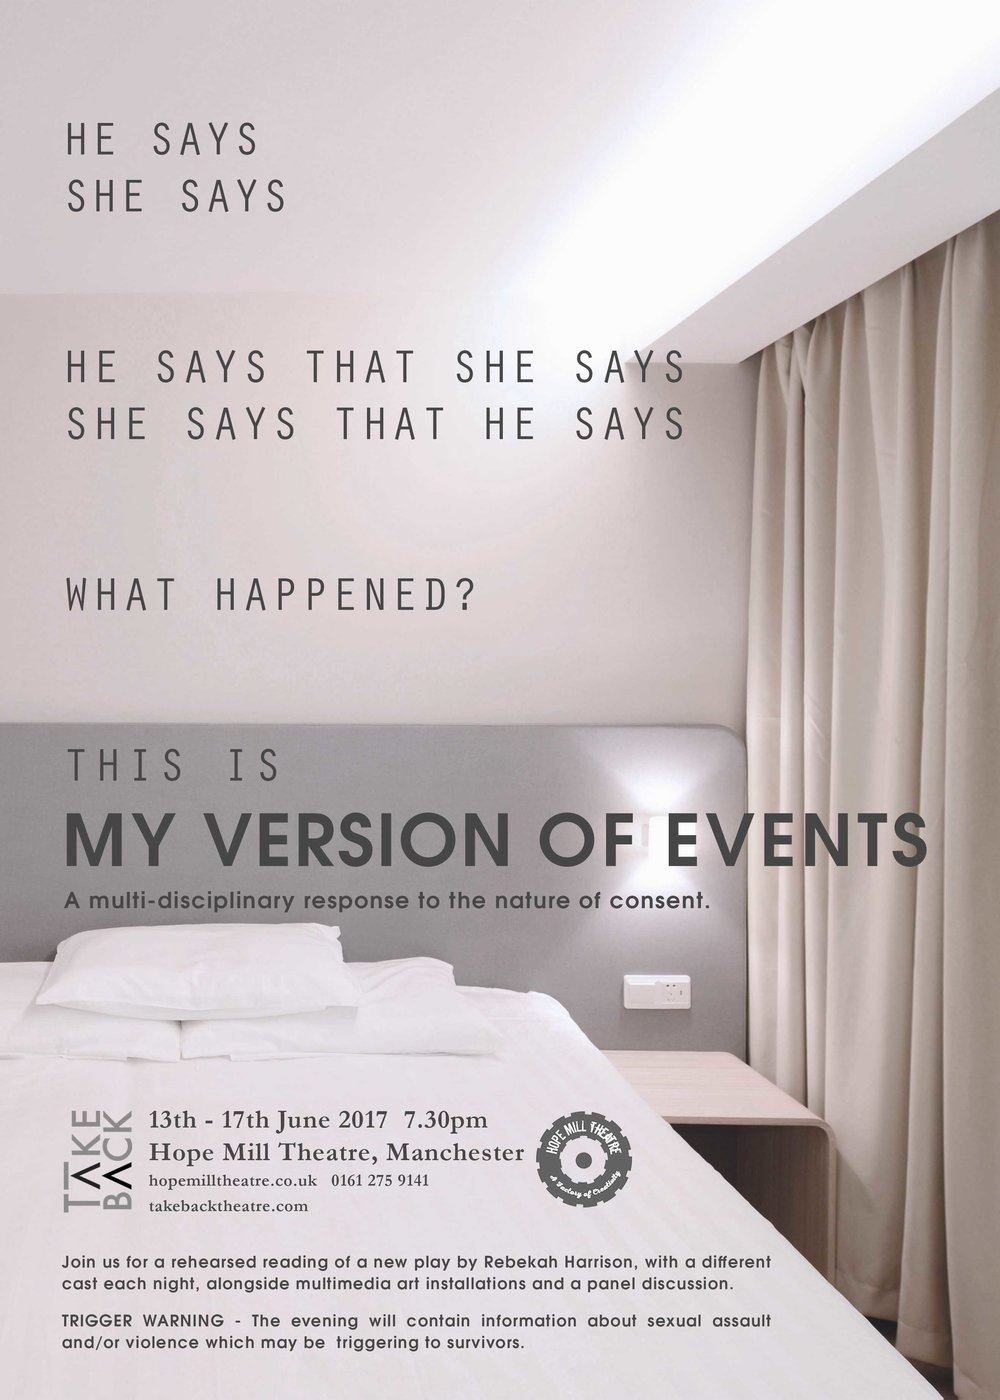 My Version of Events. 13th - 17th June 2017 Hope Mill Theatre